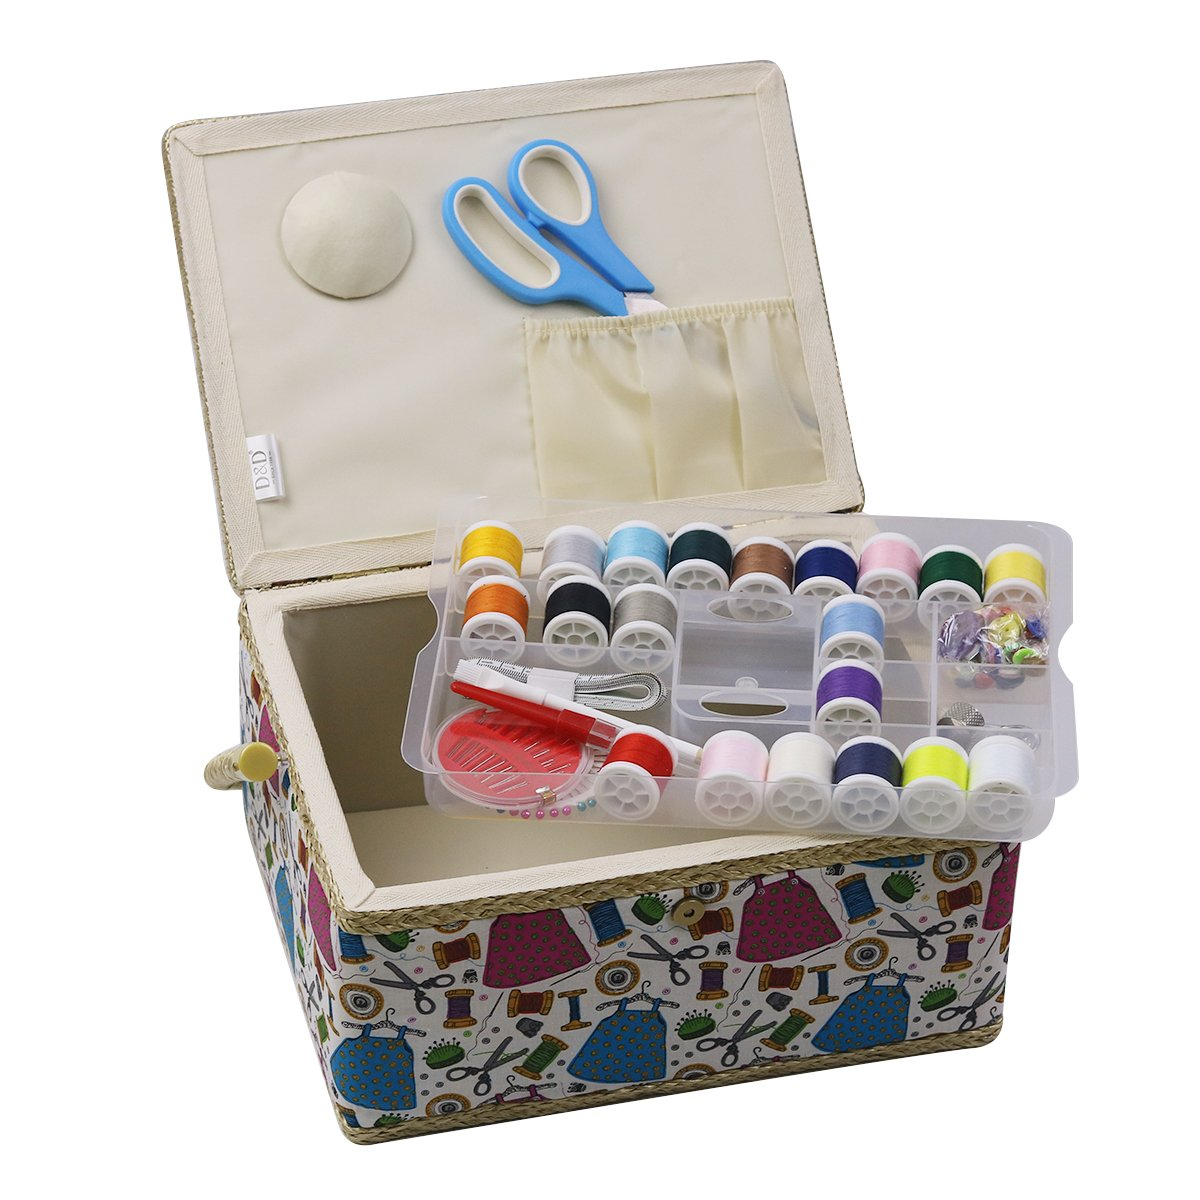 D/&D Large Sewing Box Organizer with Sewing Kit Accessories Sewing Basket